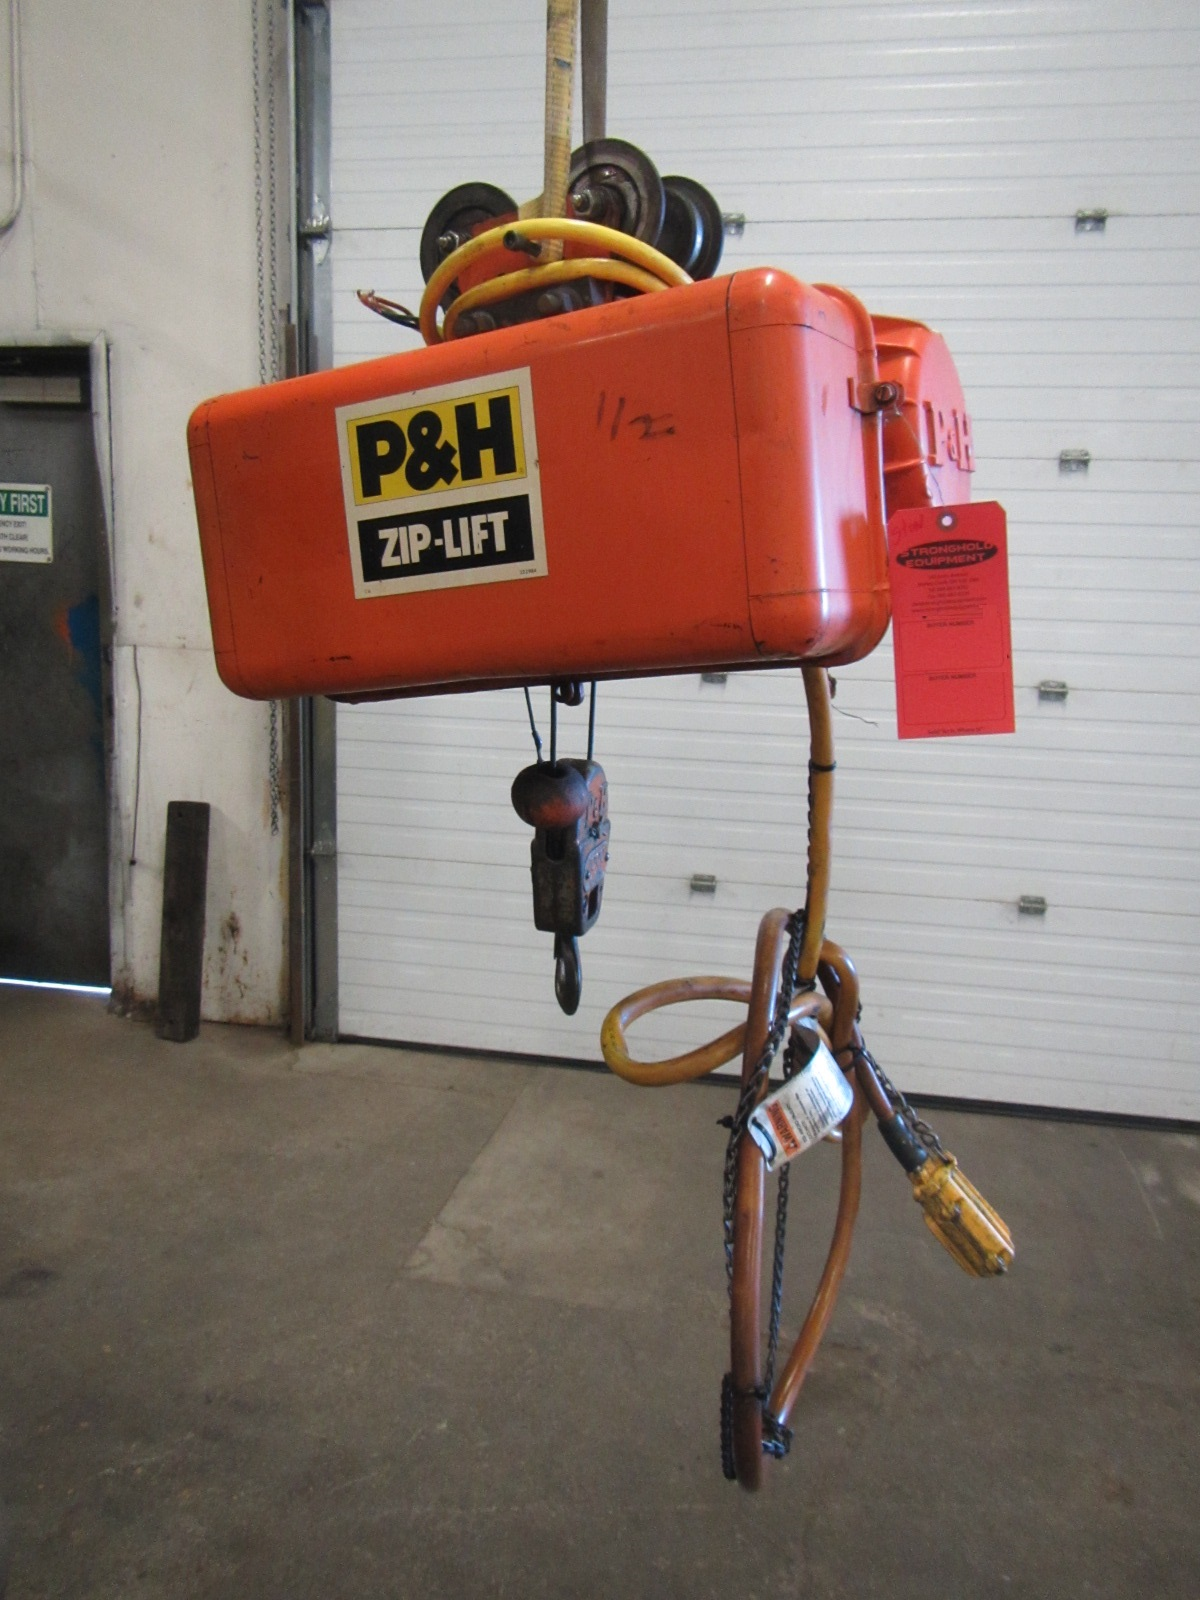 P&H ZIP-LIFT 1/2 Ton Electric Hoist - 2 speed and 15' of lift